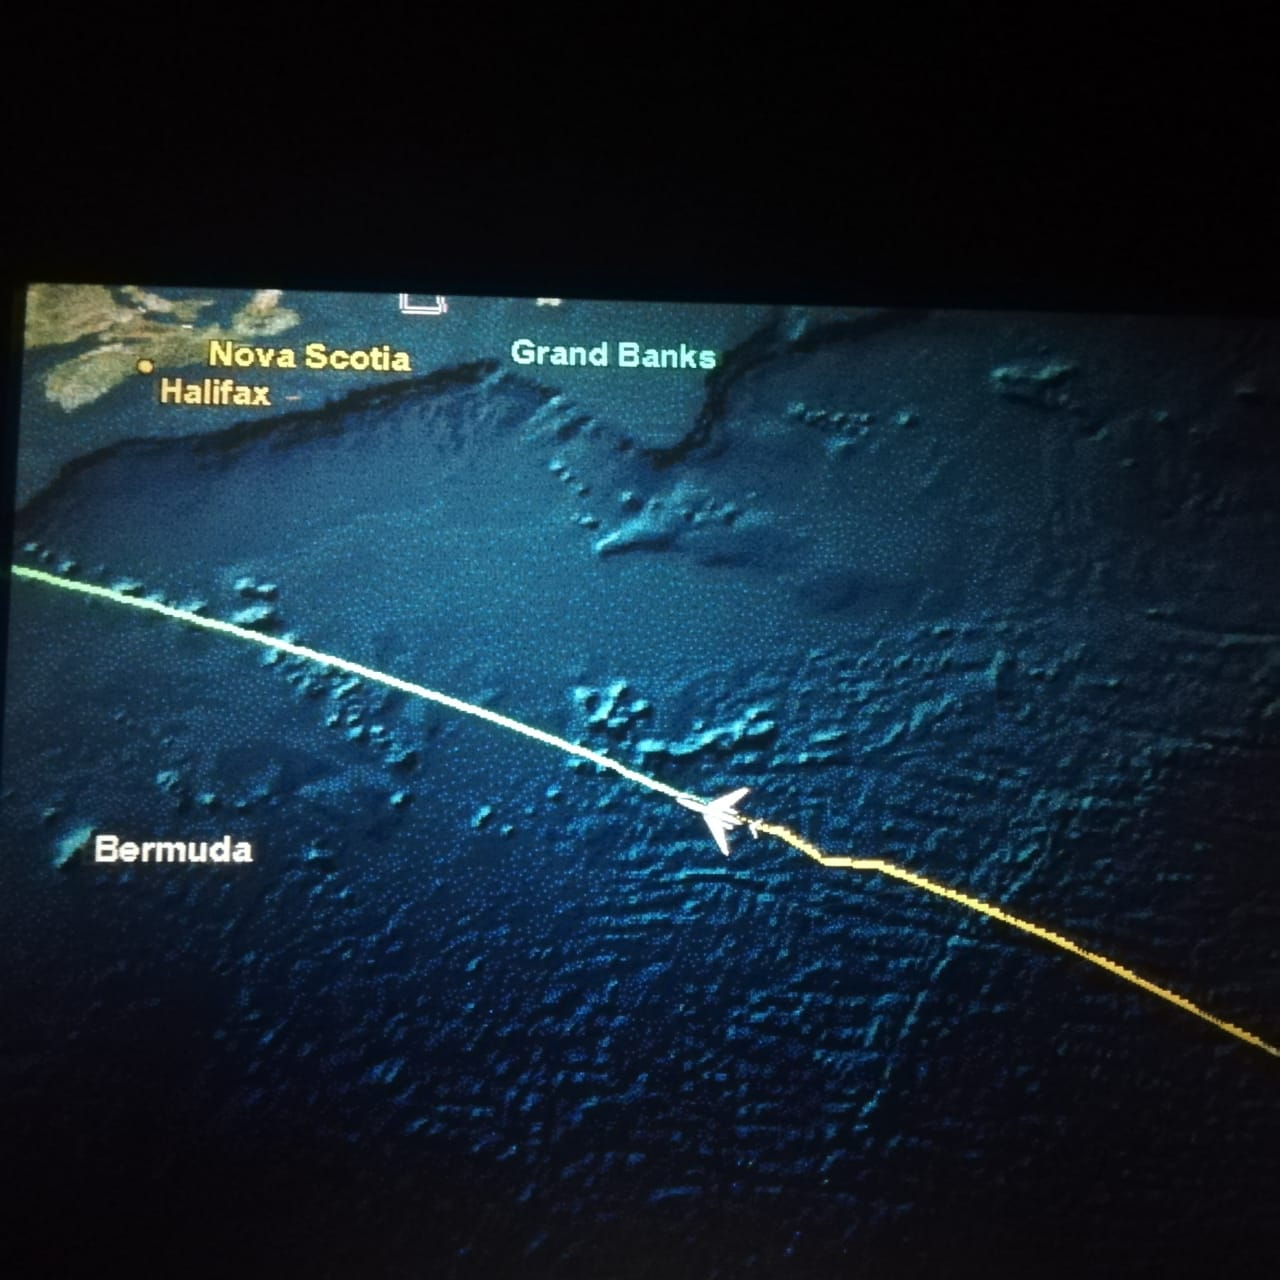 Photo showing a flight path on a screen.